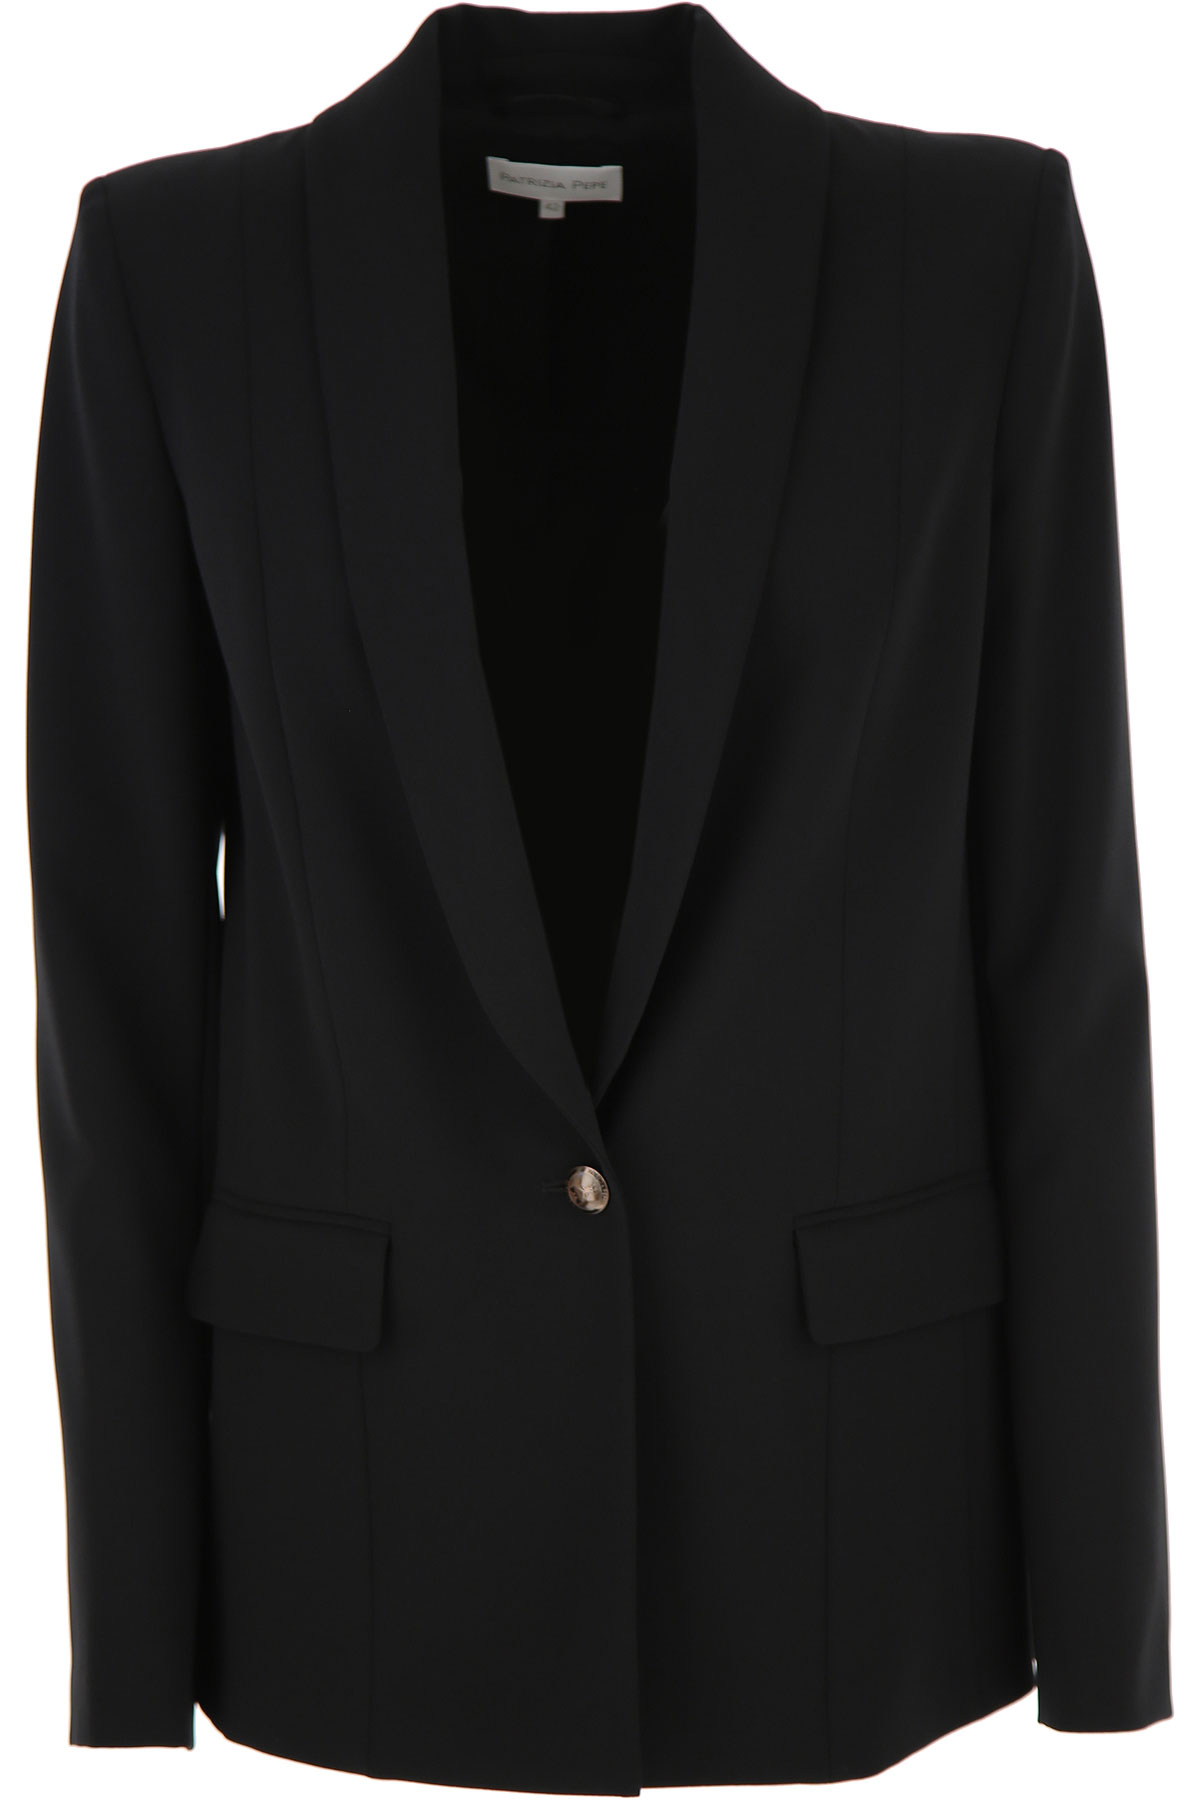 Patrizia Pepe Jacket for Women On Sale, Black, polyester, 2019, 4 6